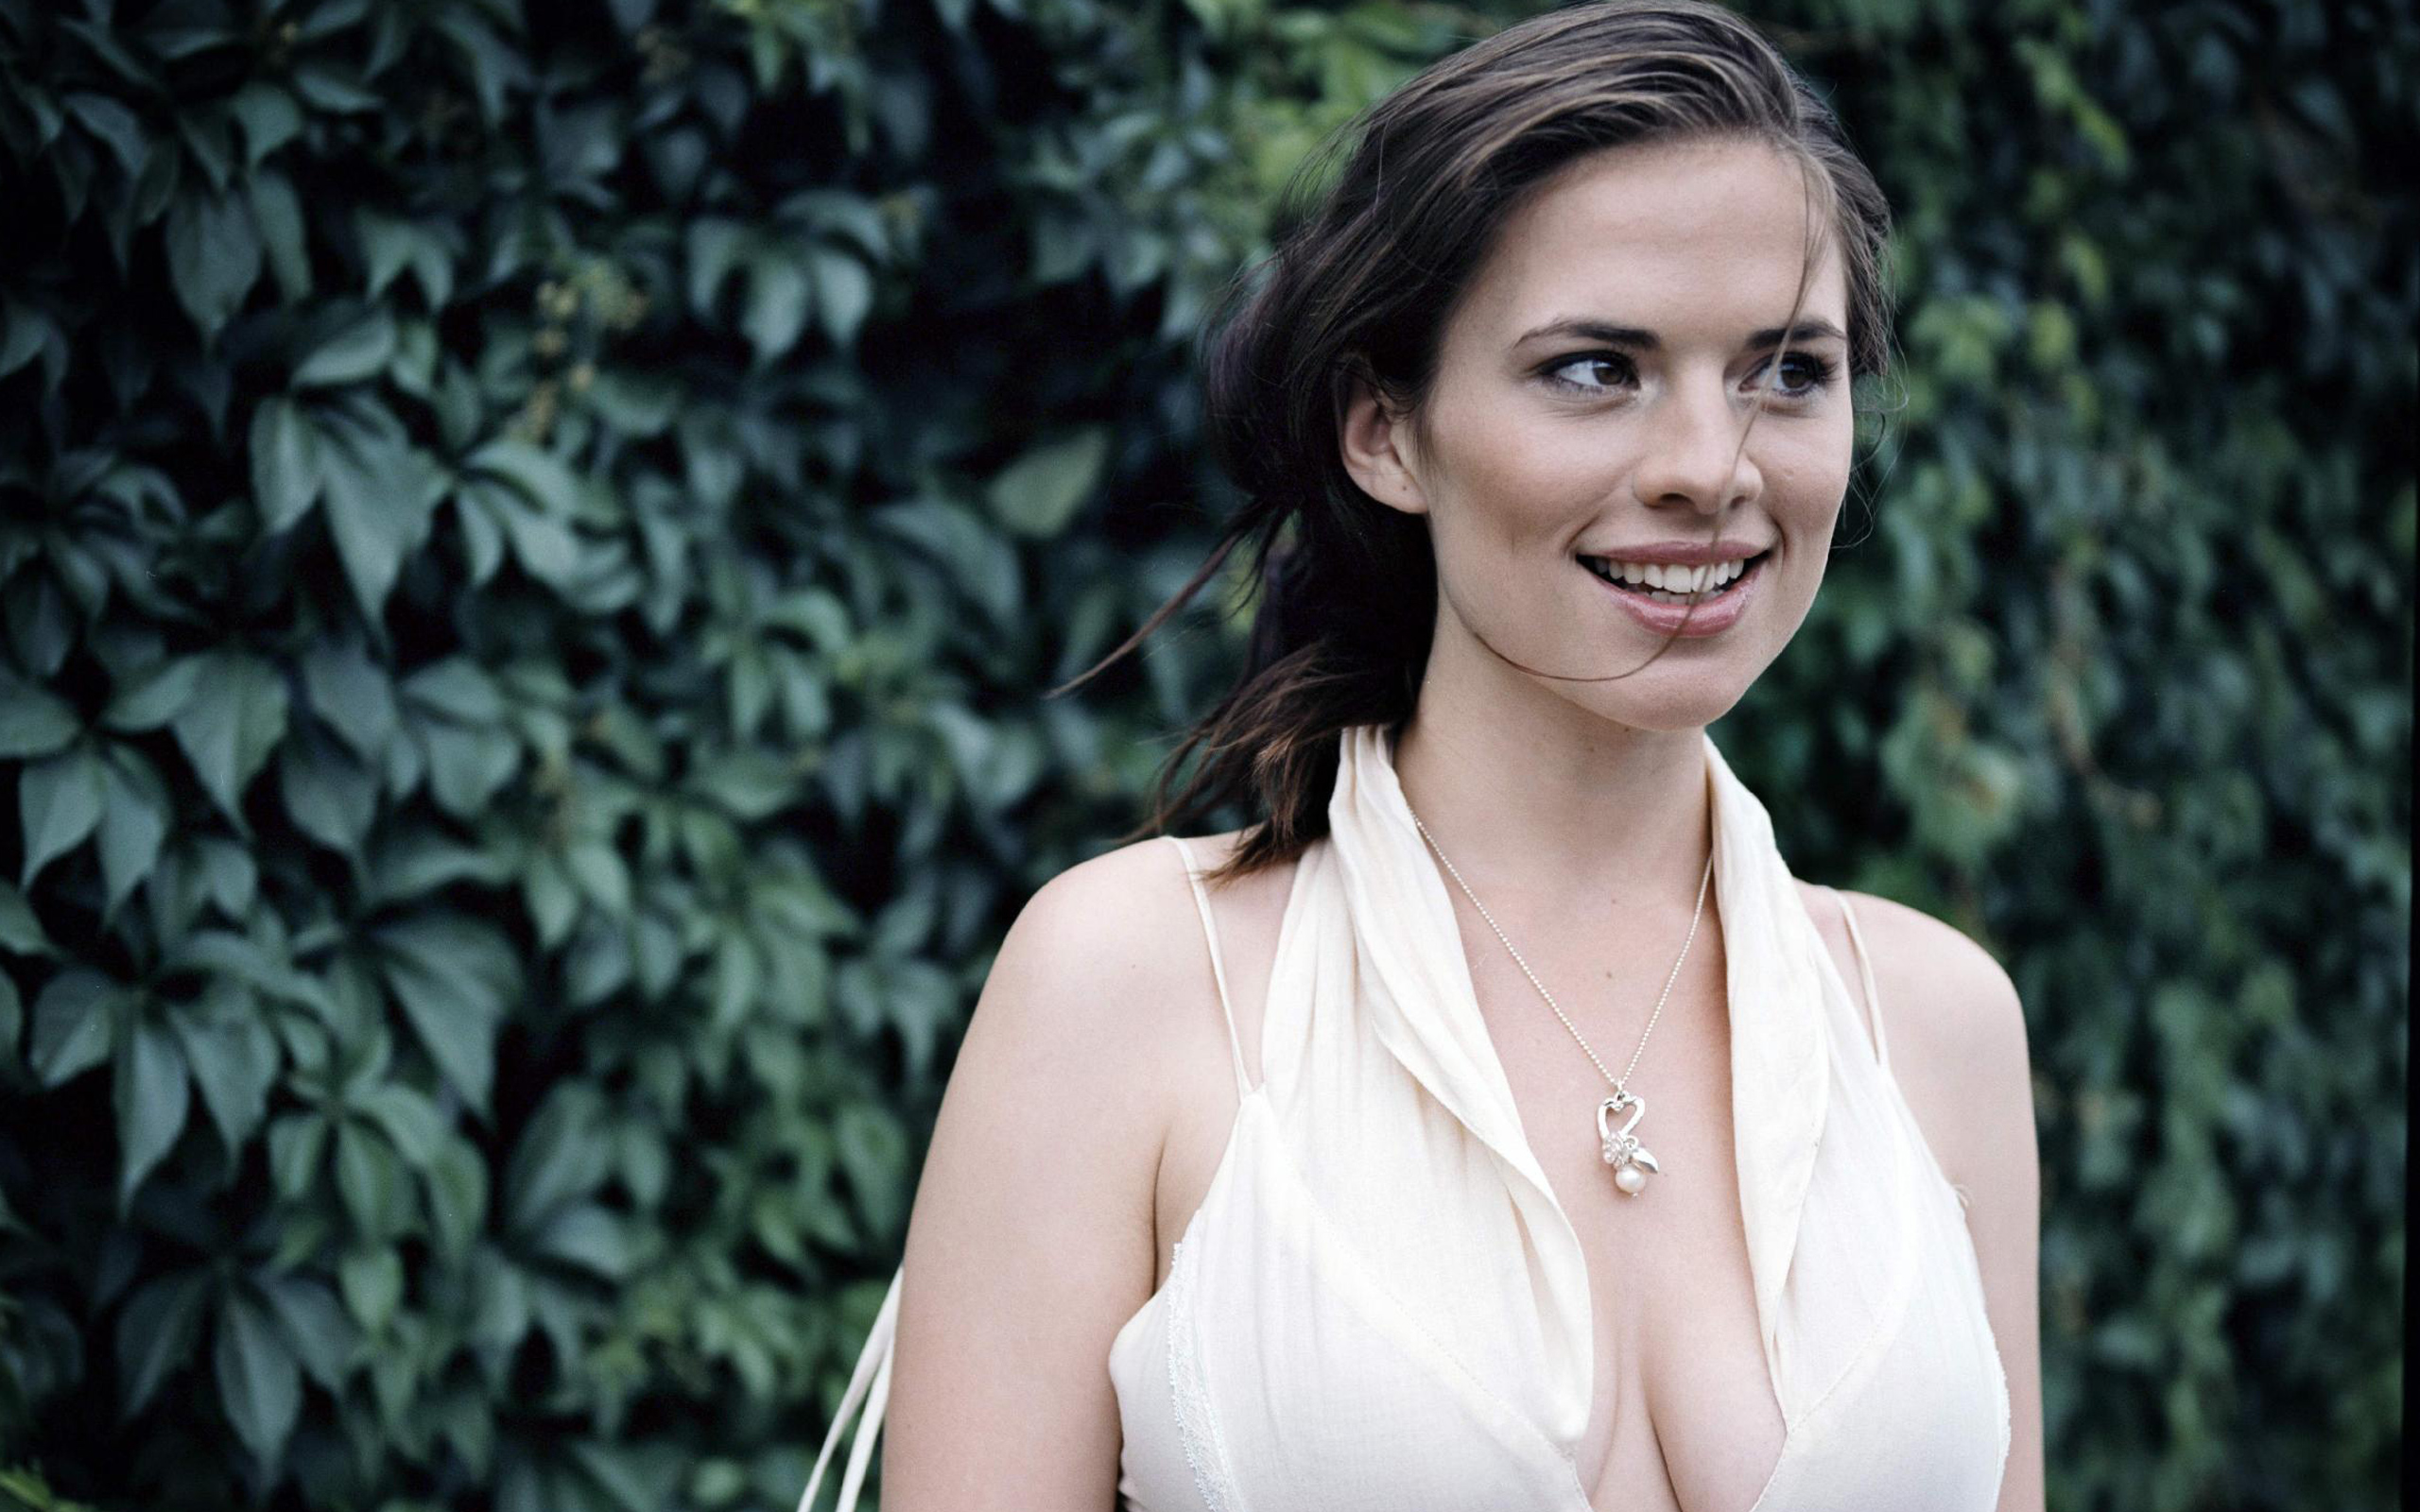 hayley atwell wallpapers high quality | download free